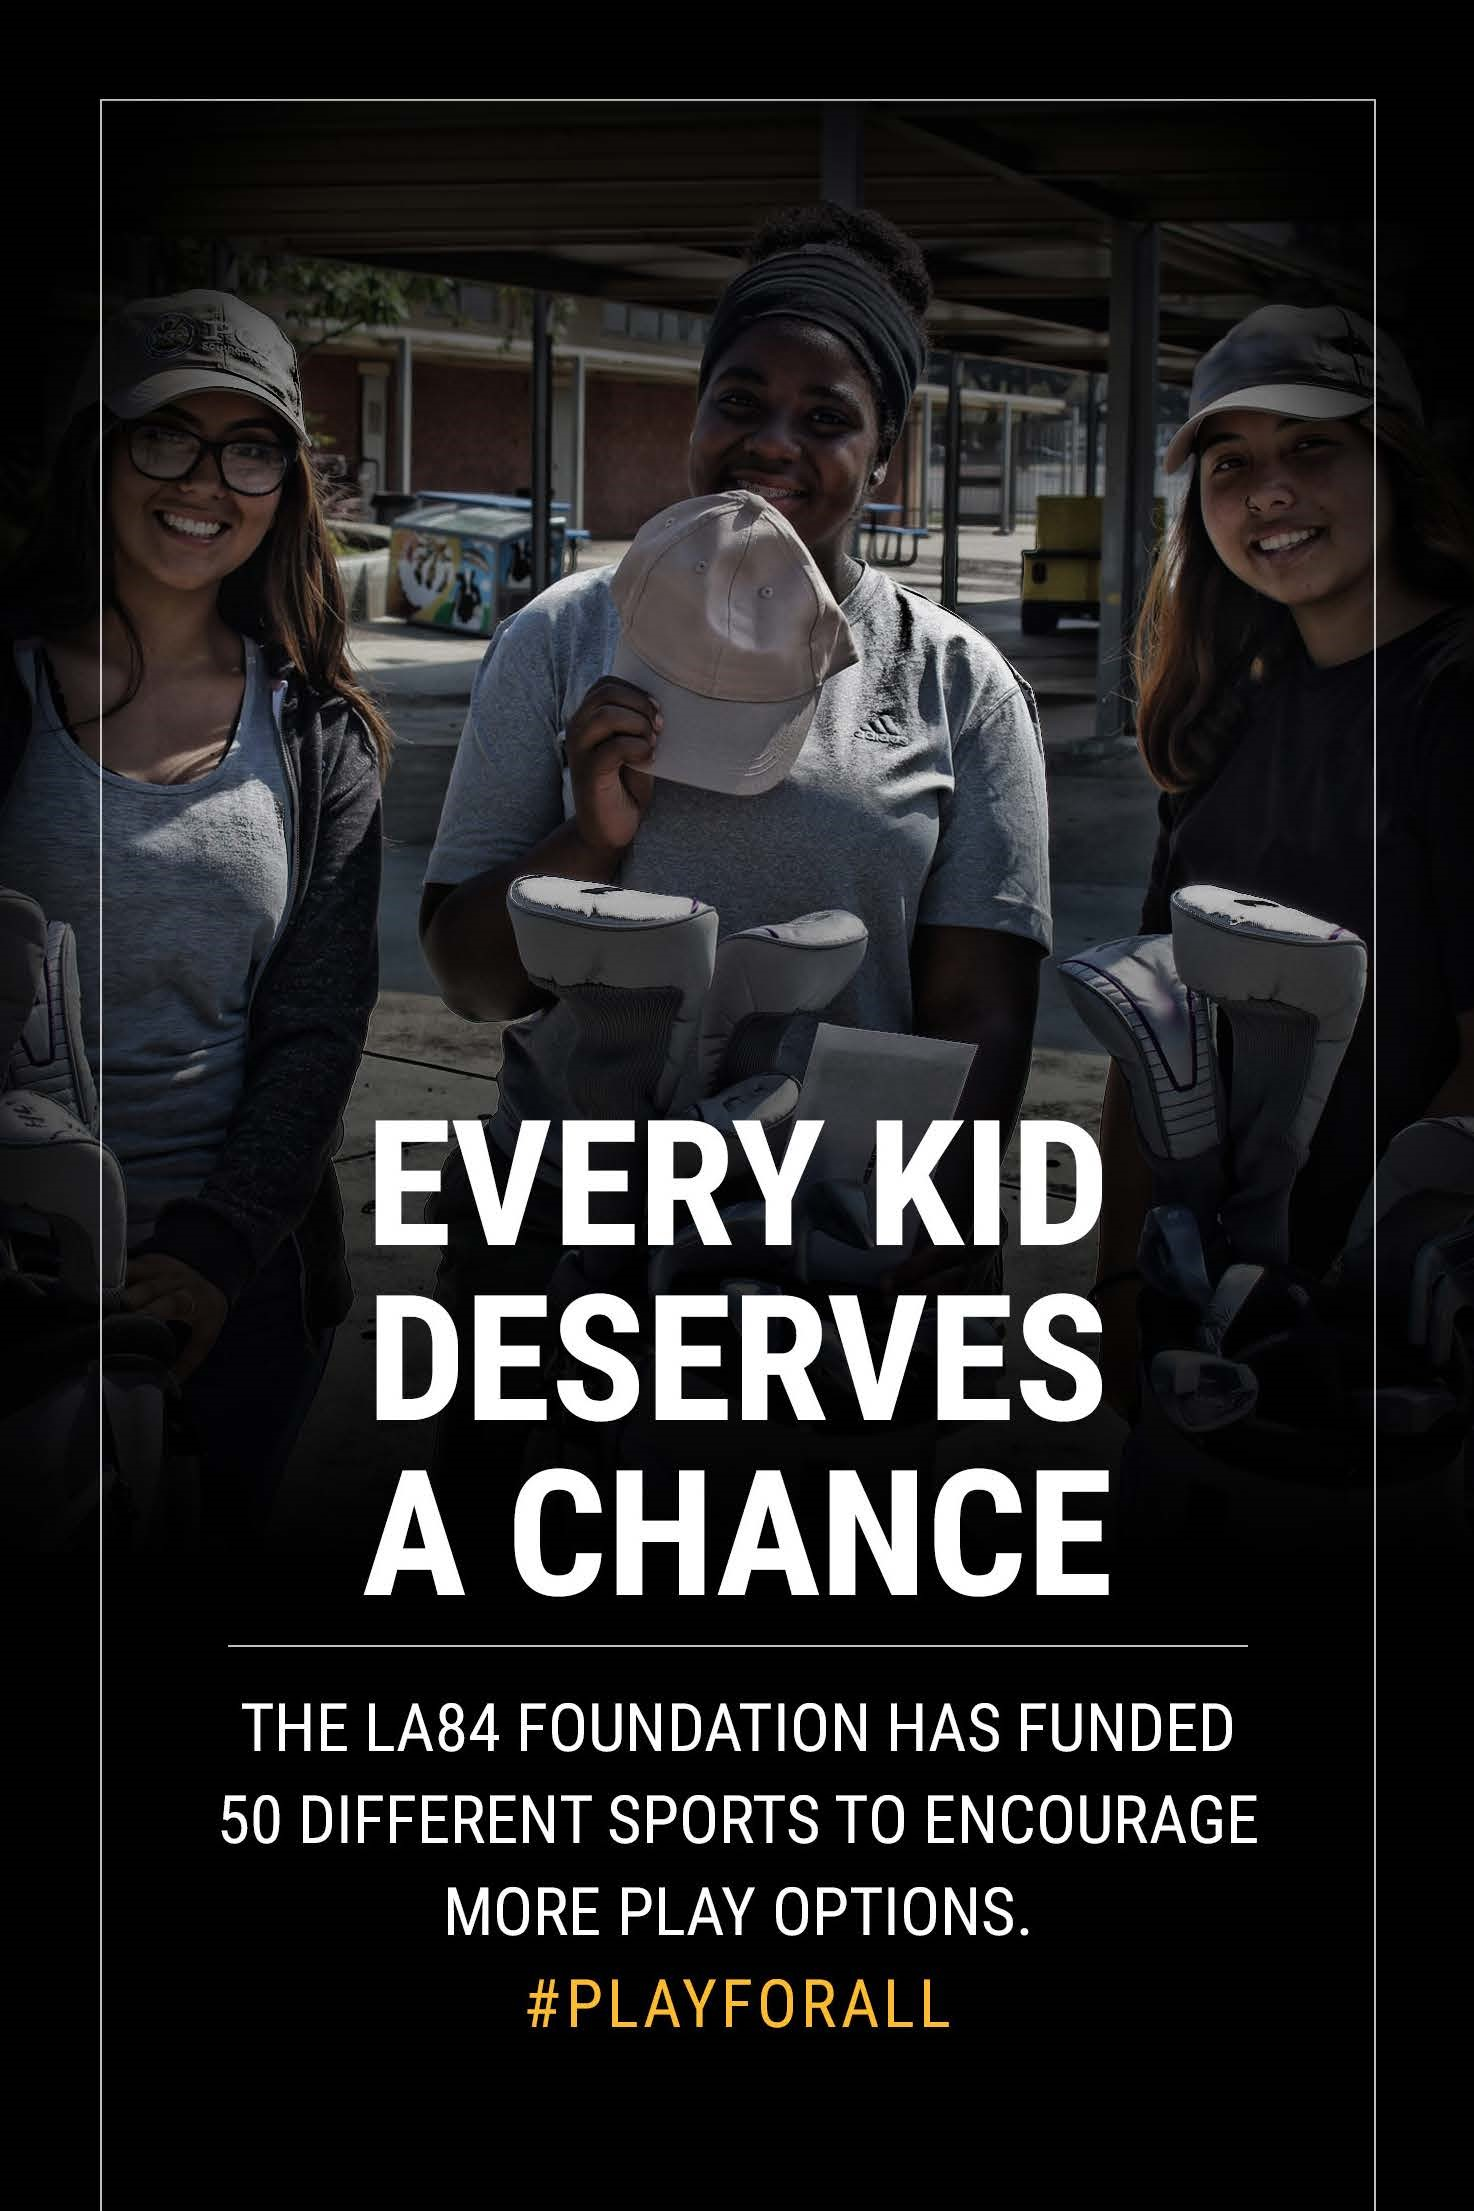 Every Kid Deserves A Chance 10-15-17 website